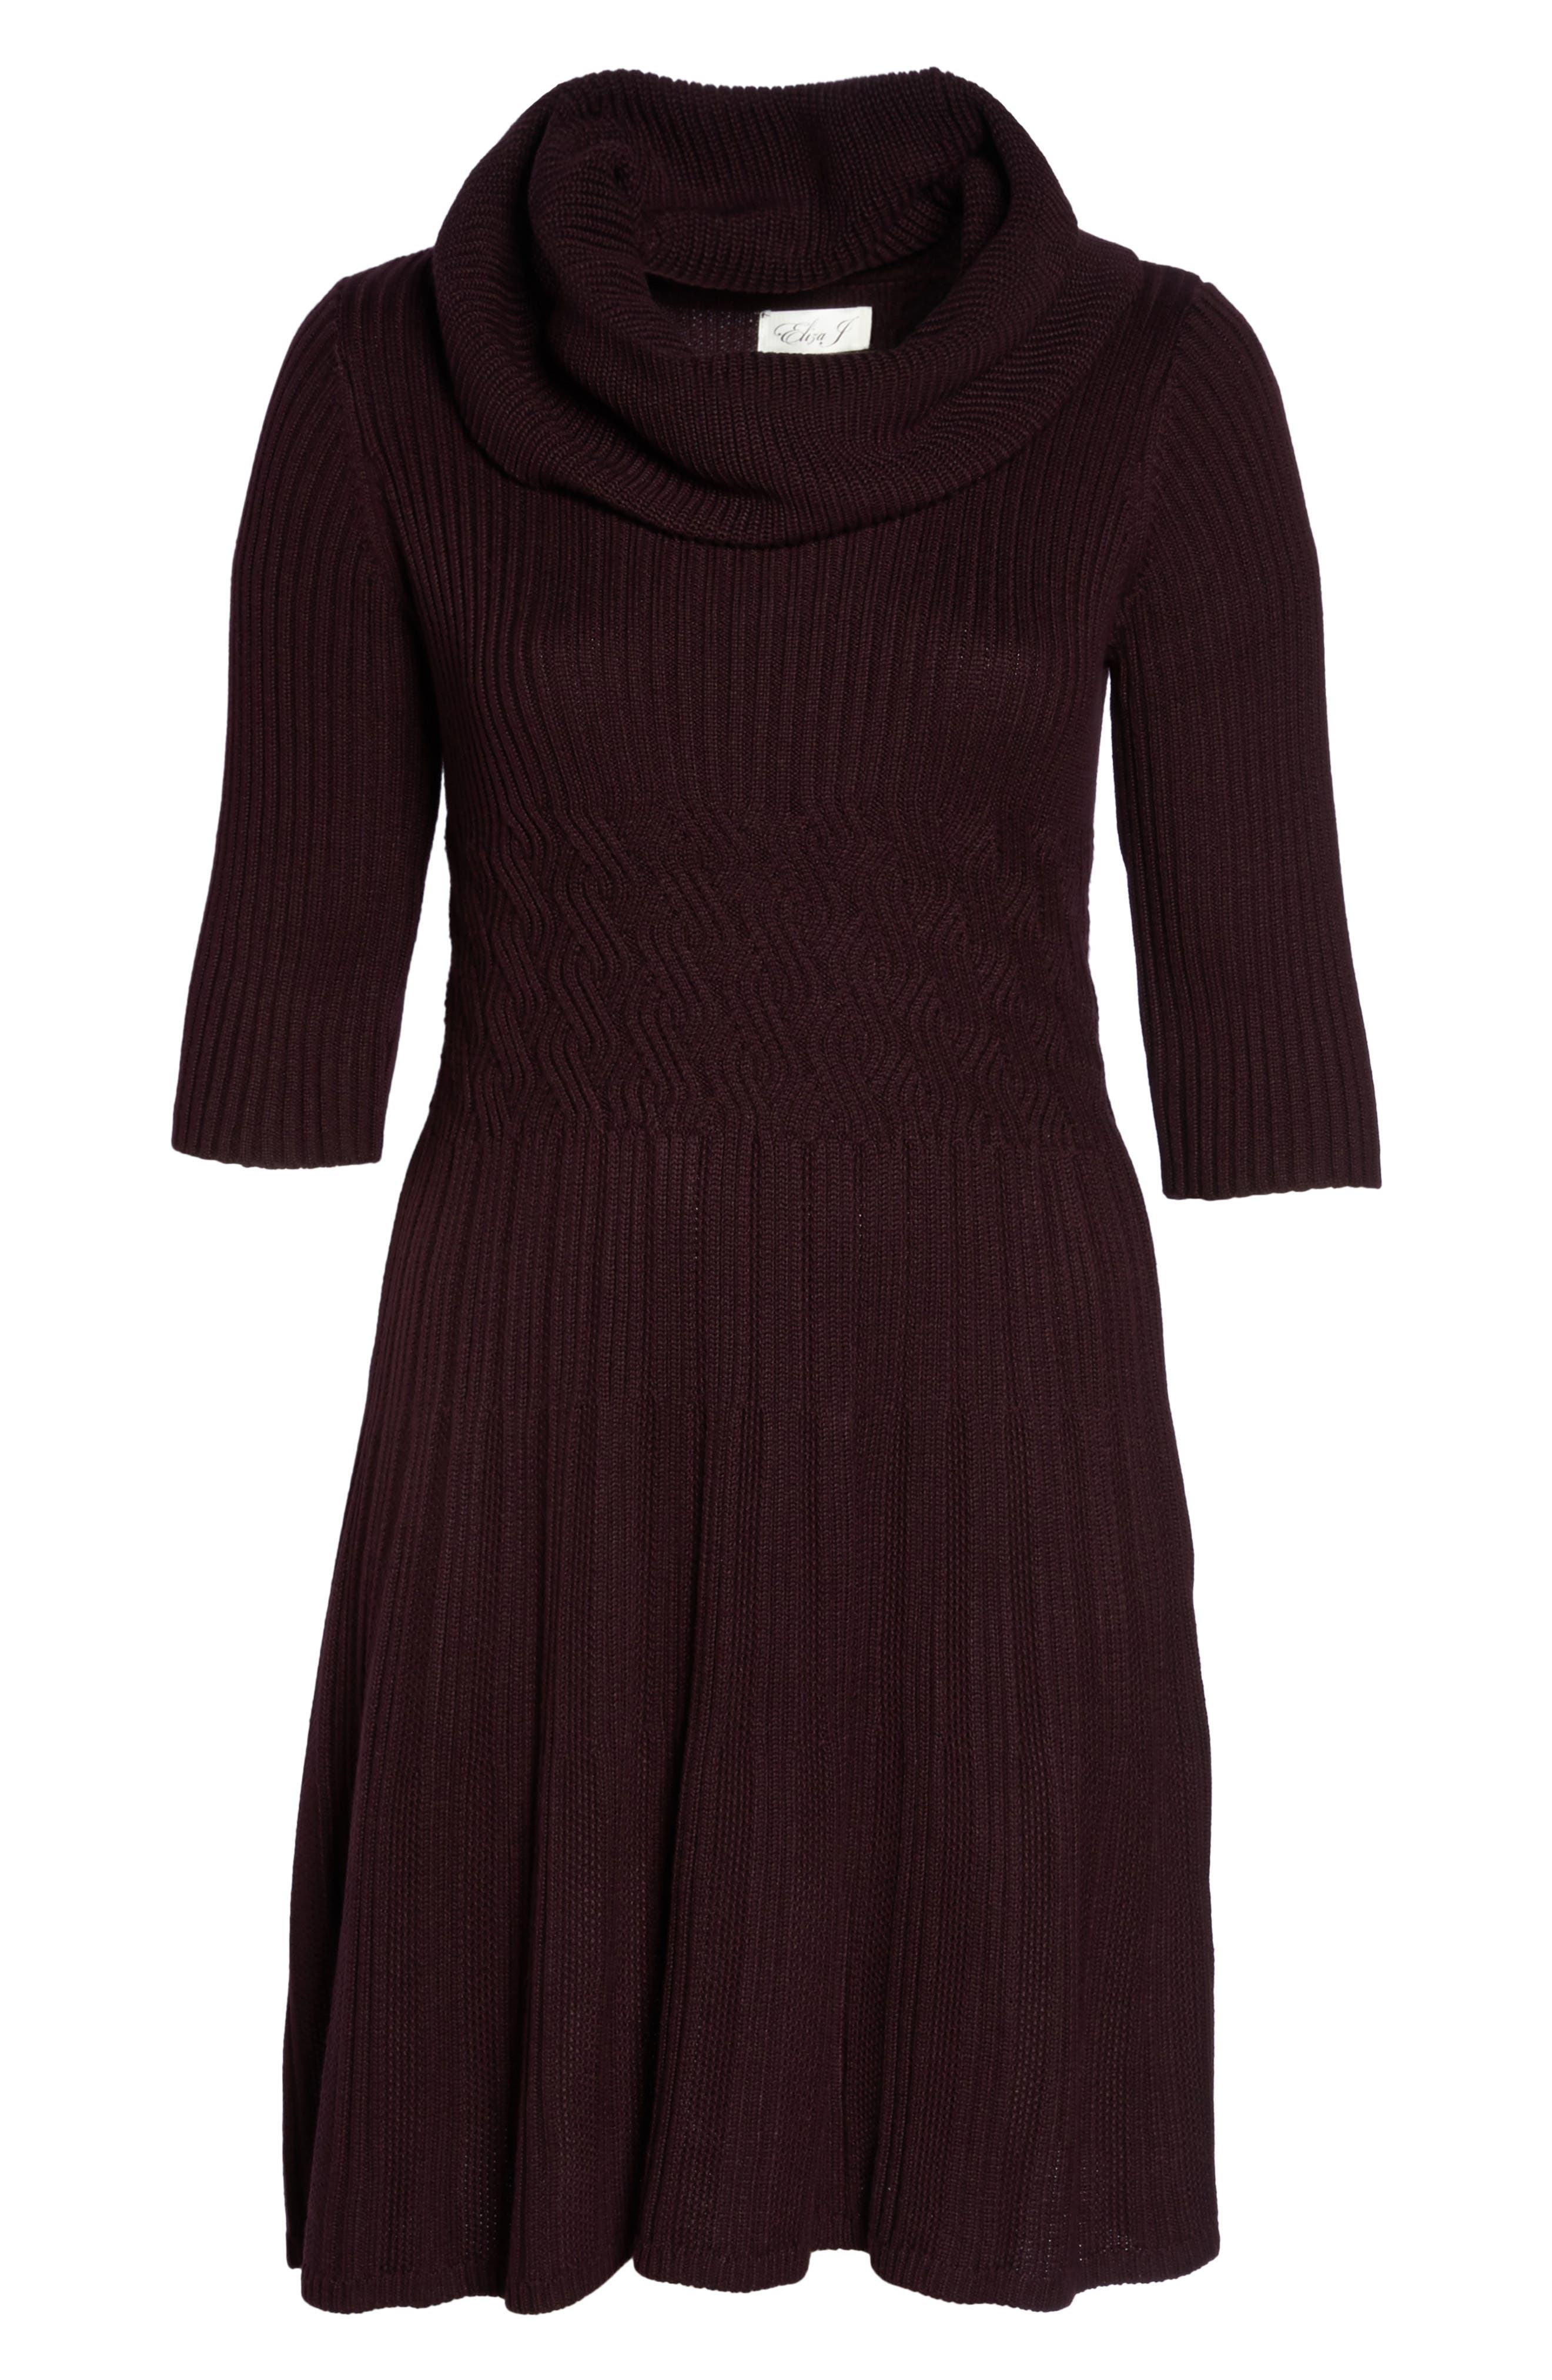 Ribbed Waist Fit & Flare Dress,                             Alternate thumbnail 6, color,                             935